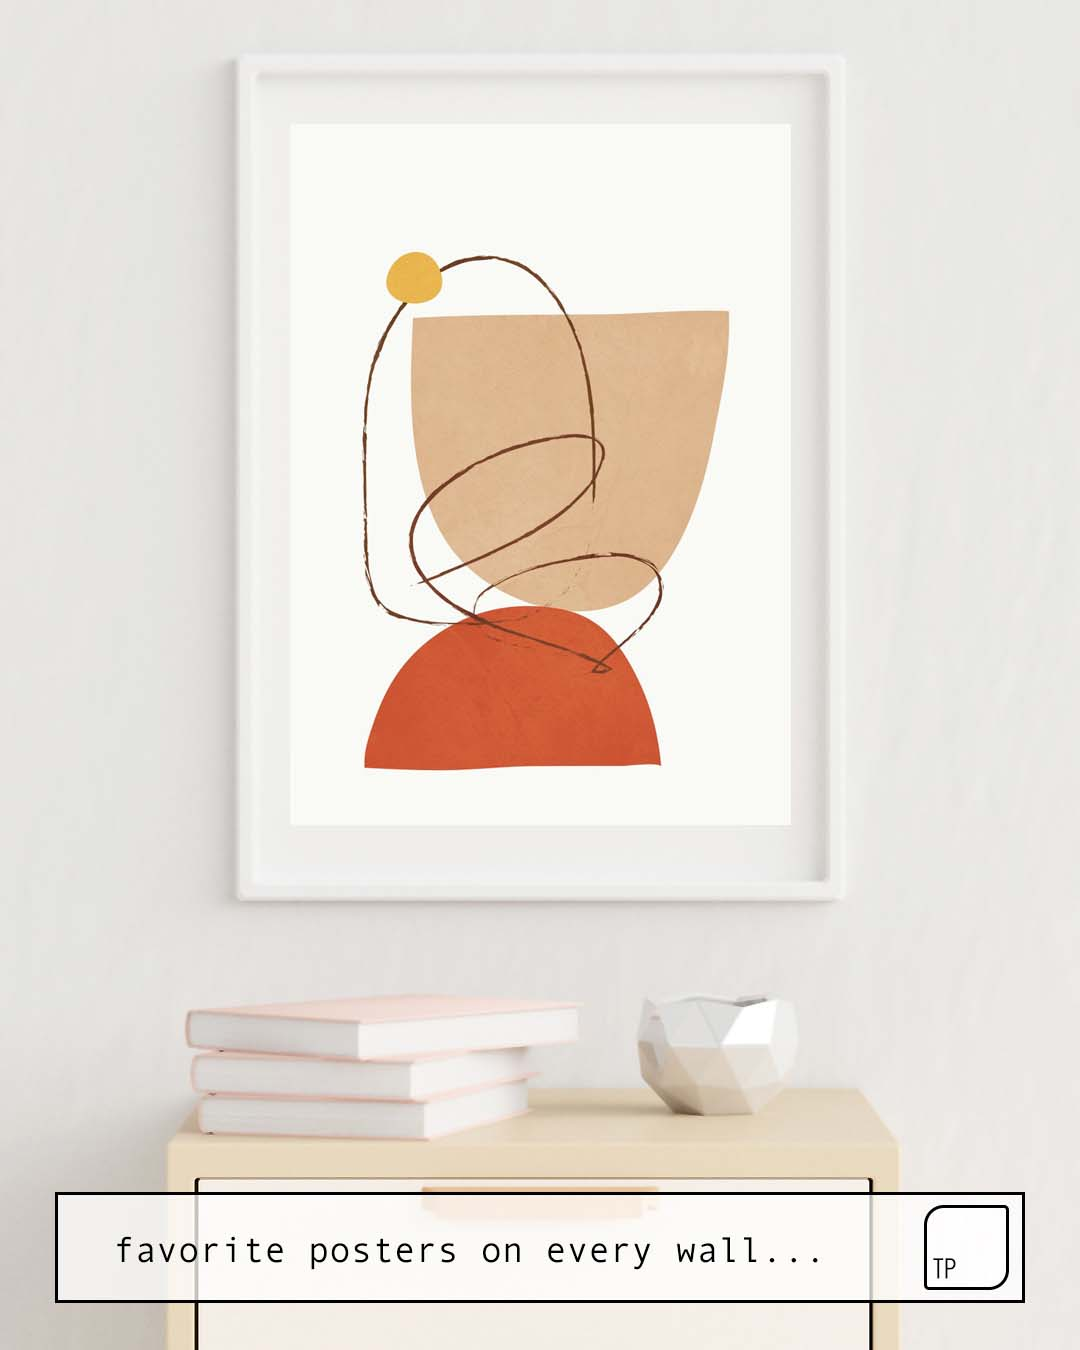 Poster | ABSTRACT SHAPES 5 von Andreas12